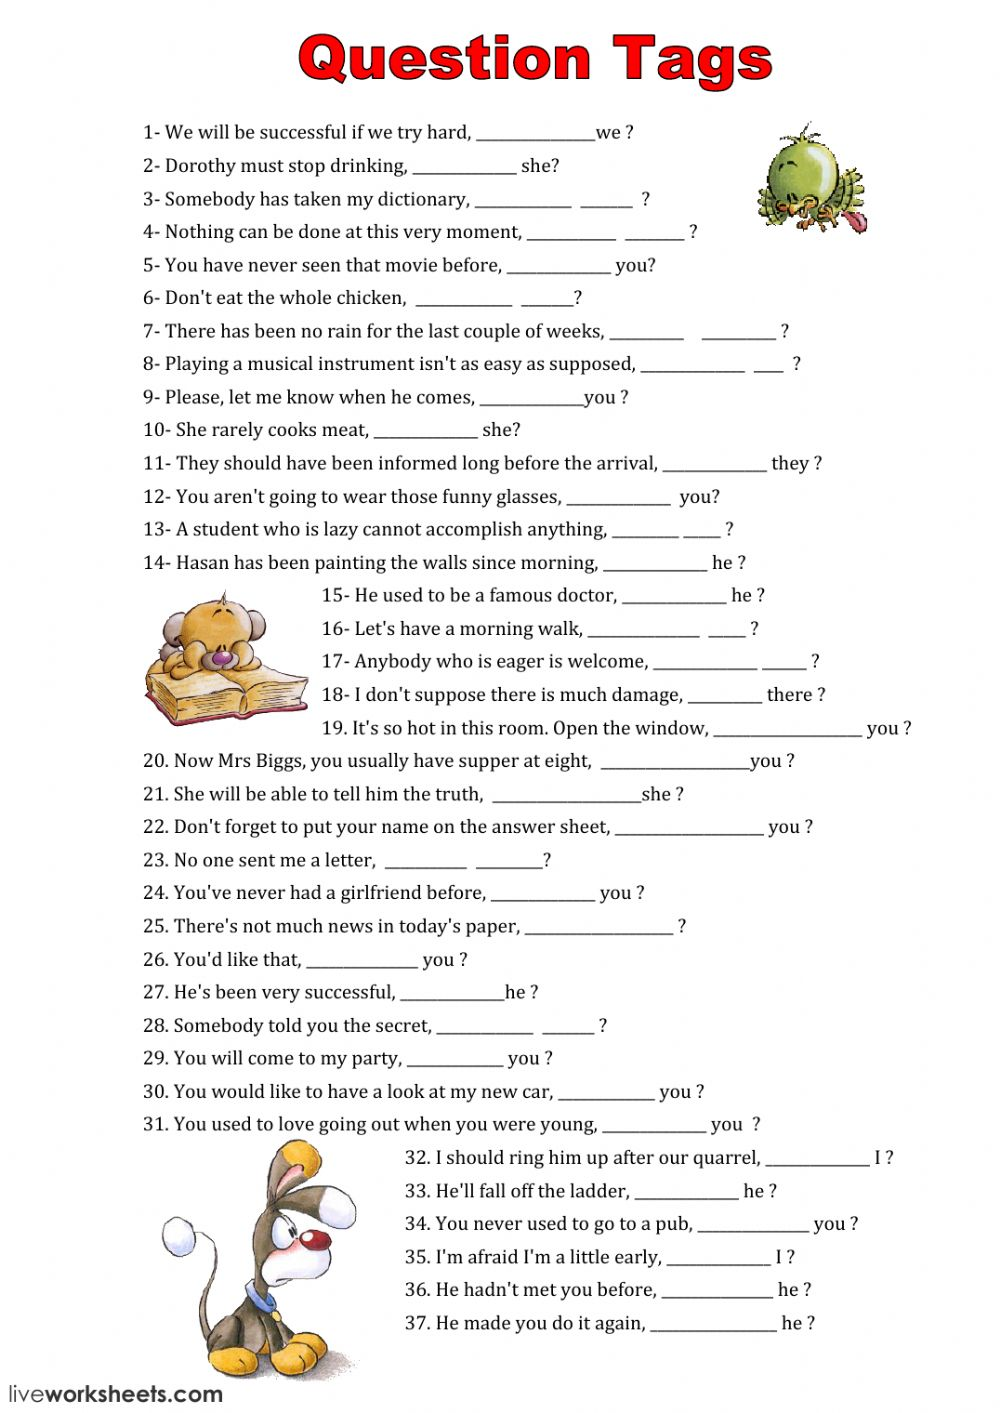 Tag Questions - Interactive worksheet